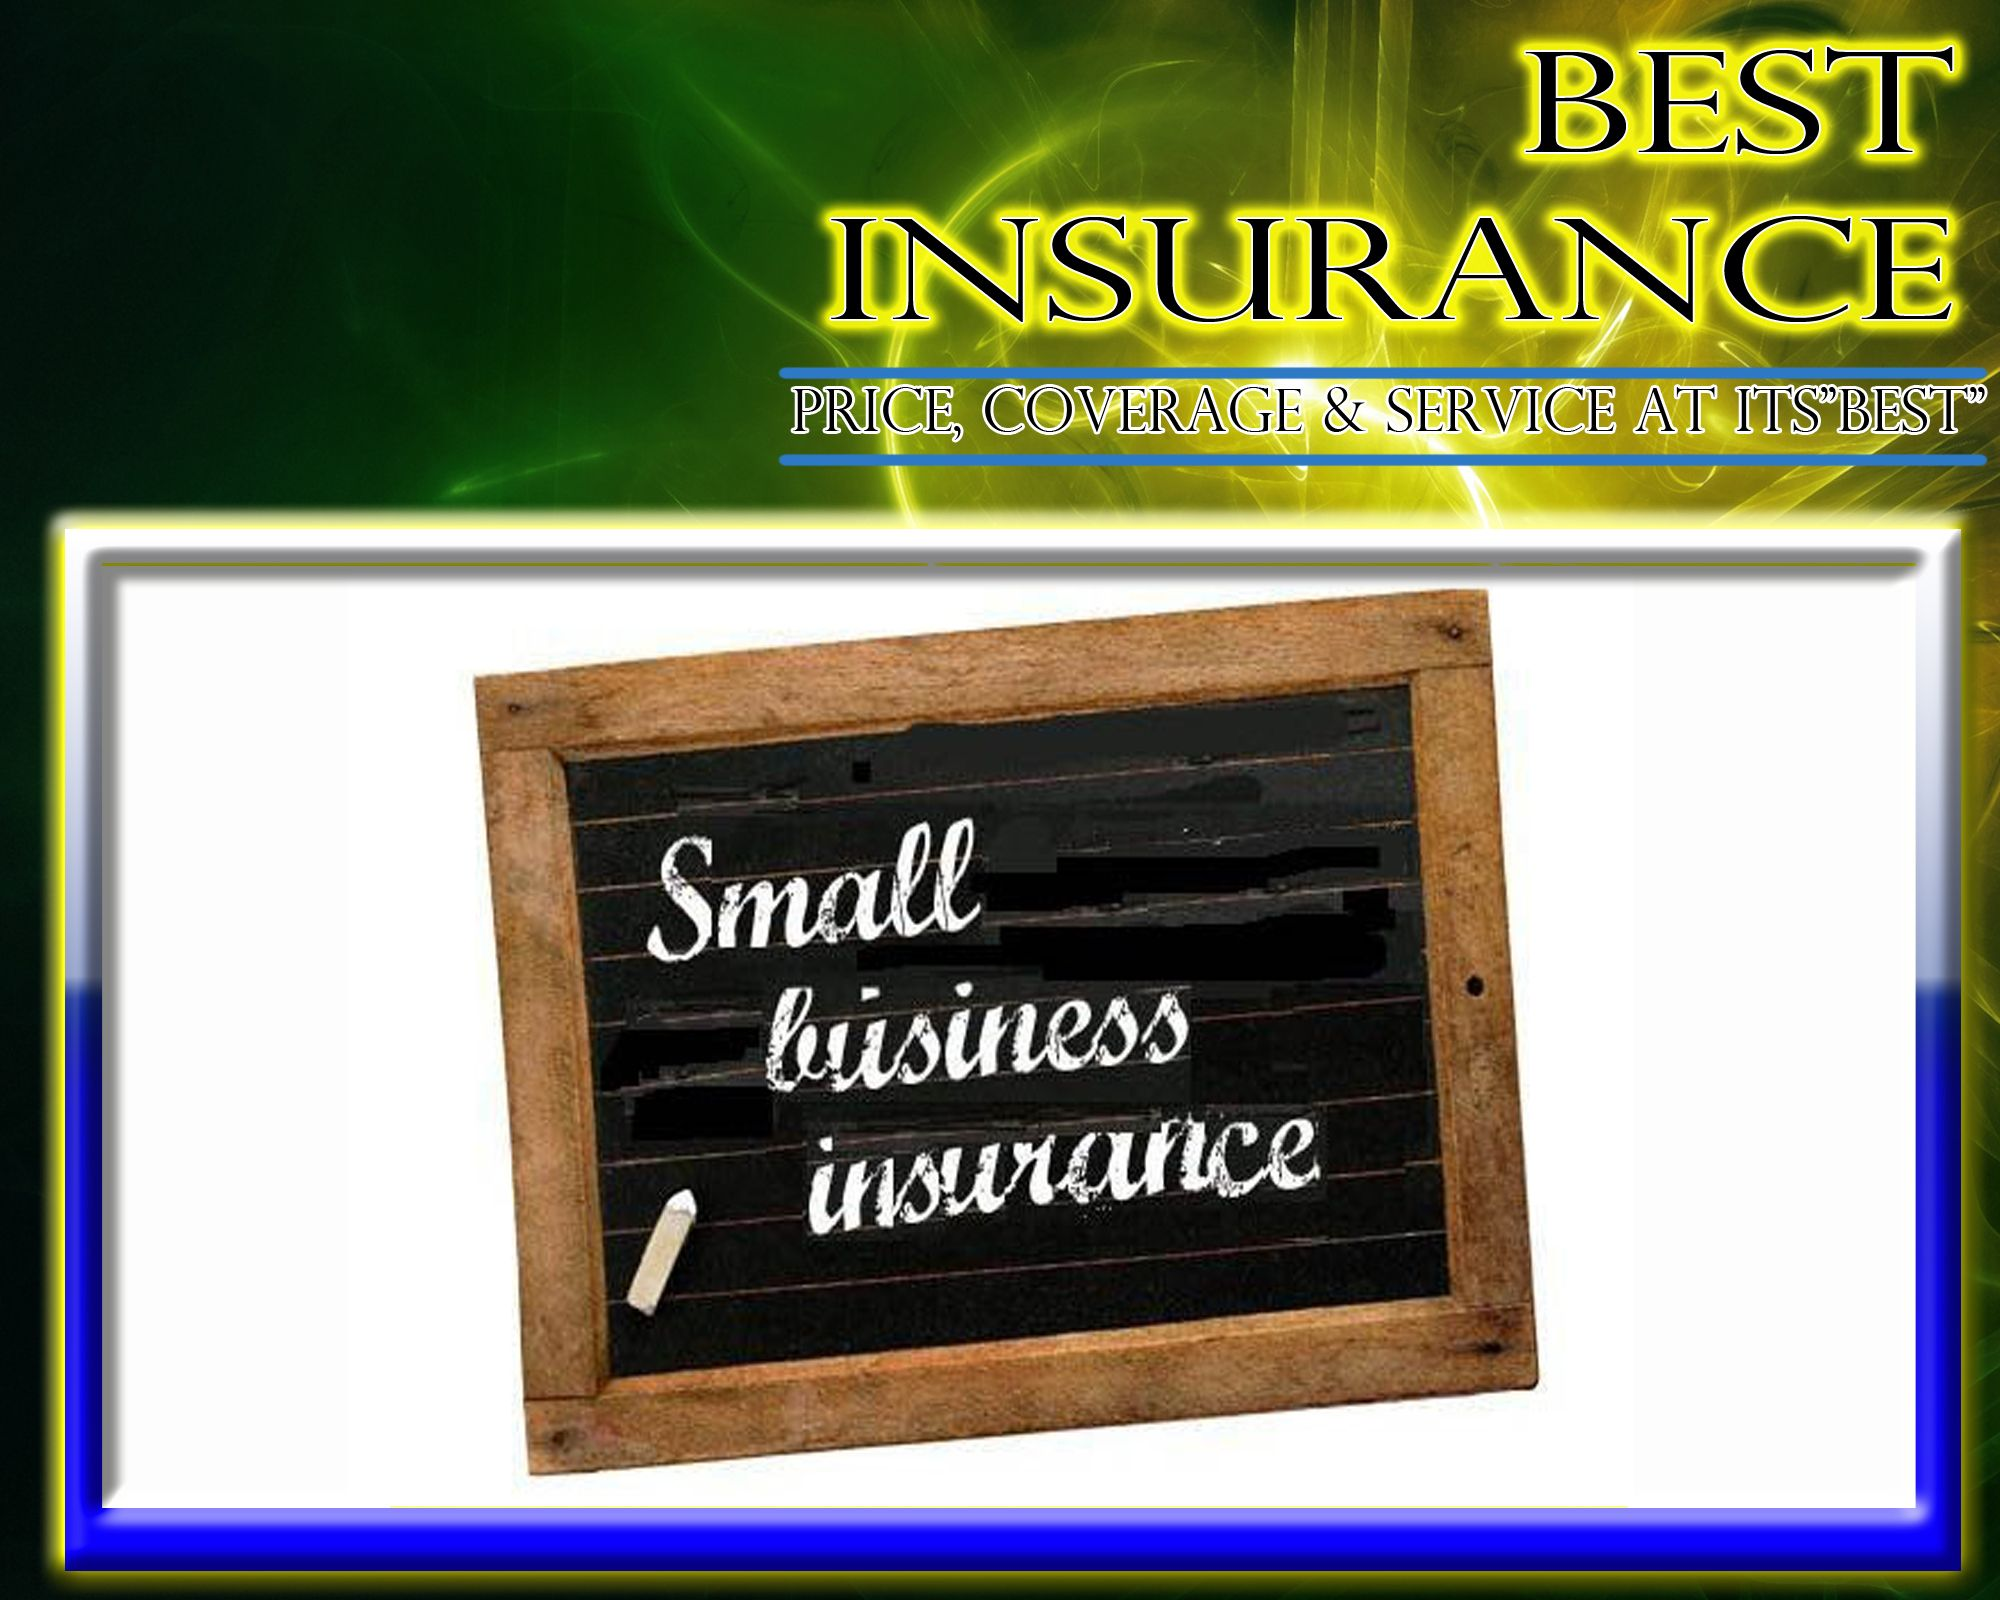 Home Insuranceft Lauderdale Insurance For Small Businesses Ce